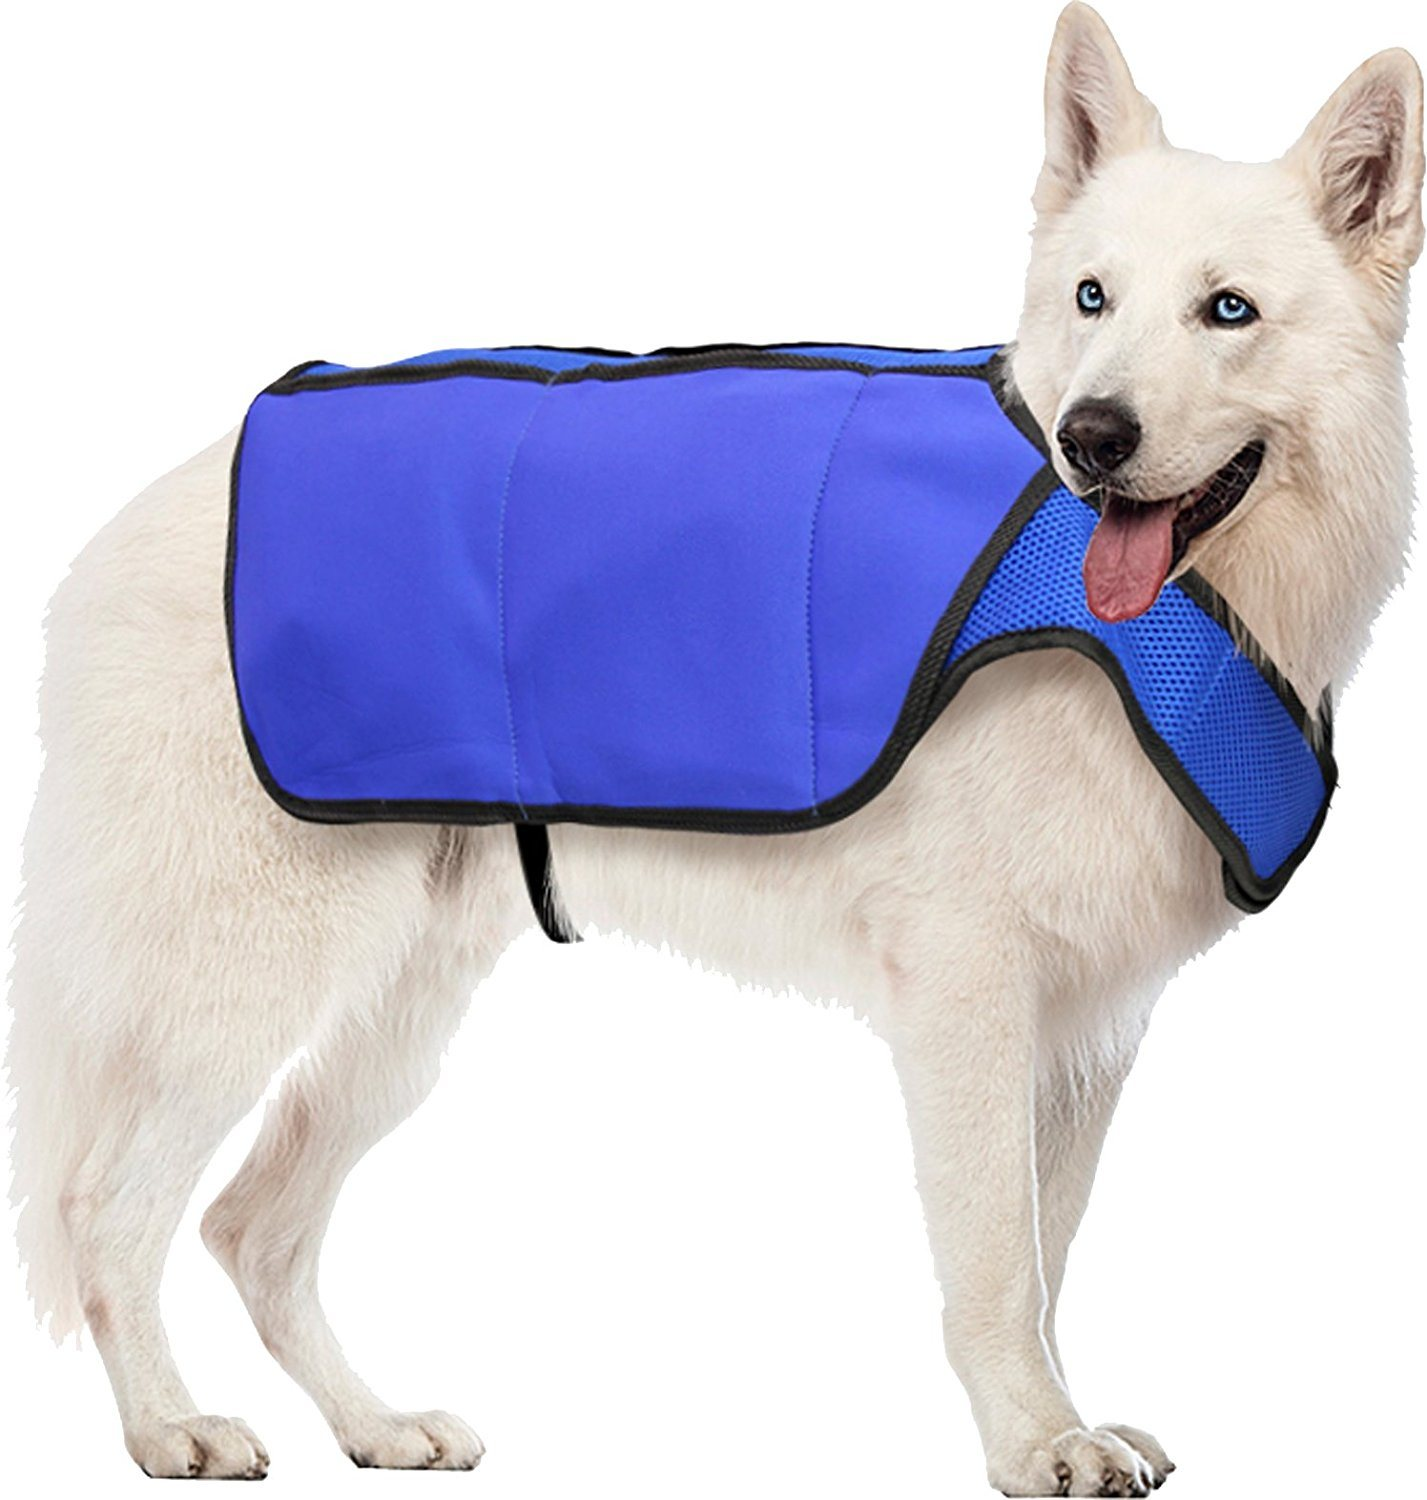 Pet Products Cool Cooling Summer Vest for Dogs, Large, Blue